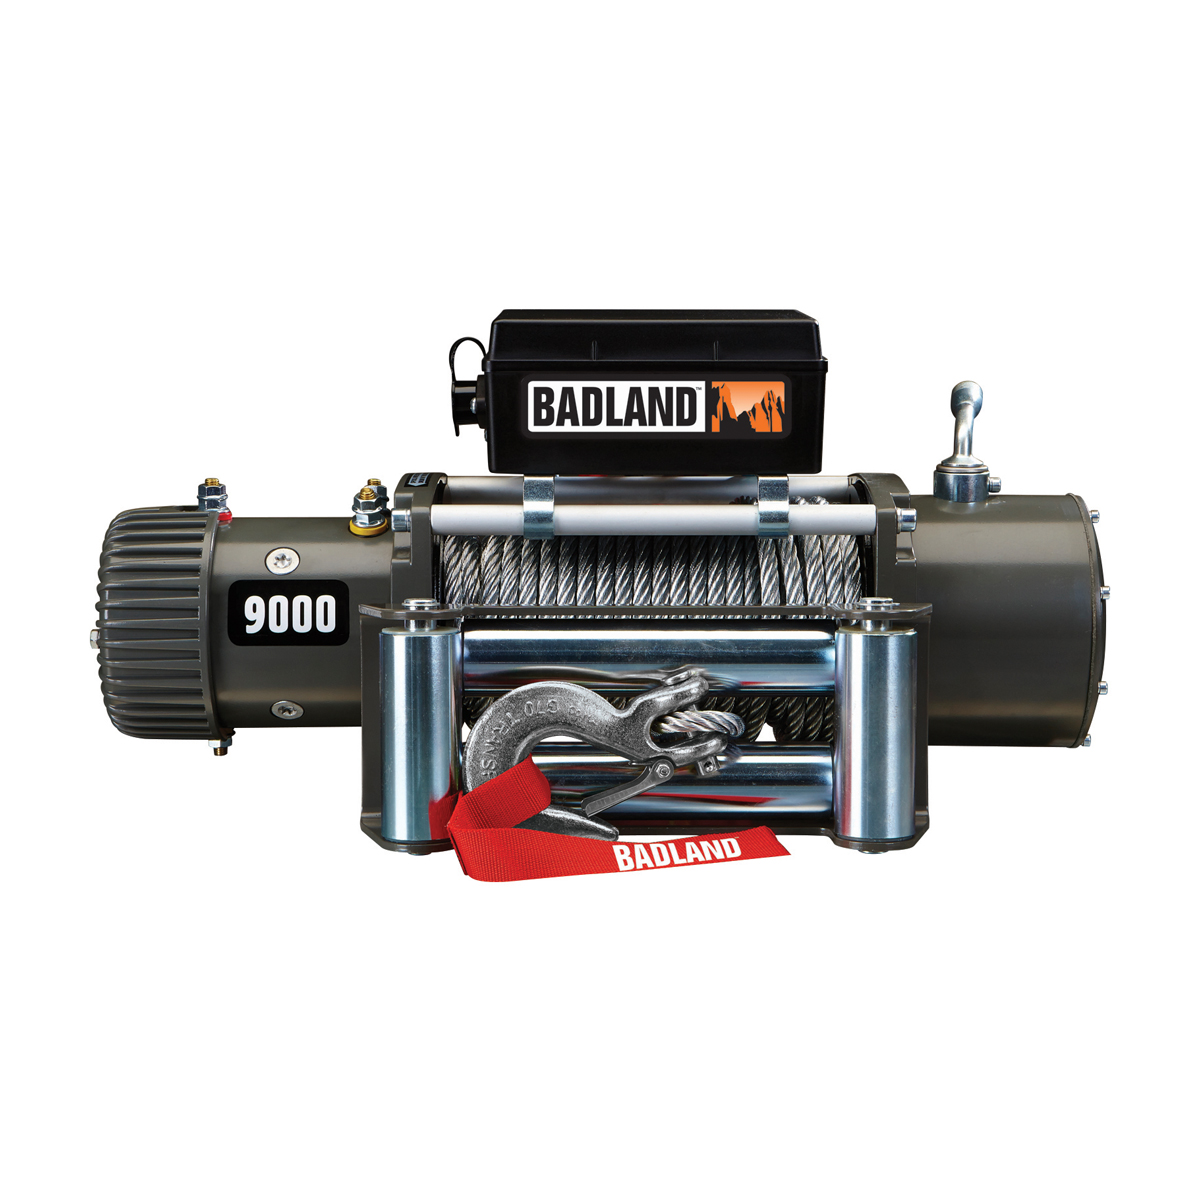 12 000 Lb Badland Winch Wiring Diagram Guide And Troubleshooting For Warn Badlands Mount Bing Images 12000